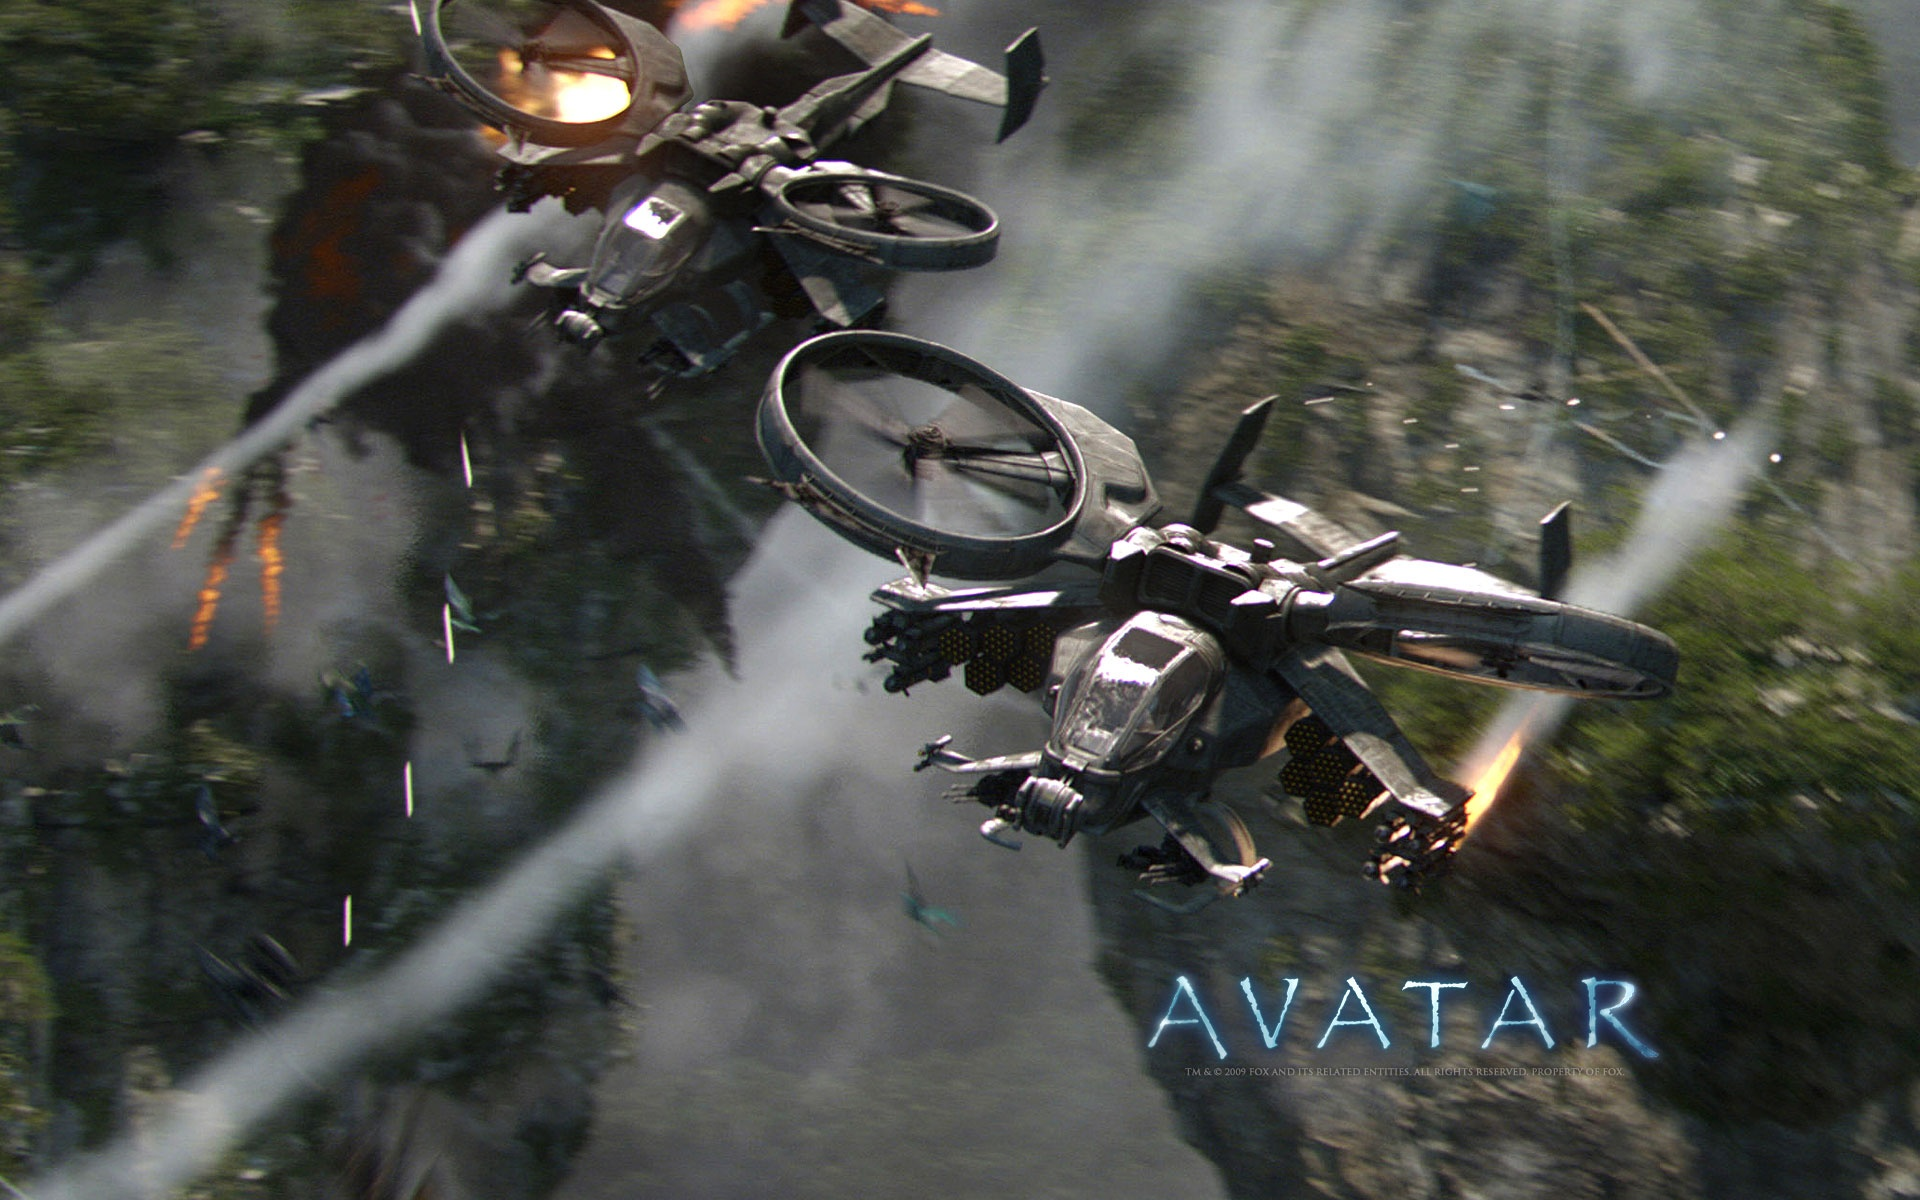 avatar movie 2009 wallpapers in jpg format for free download